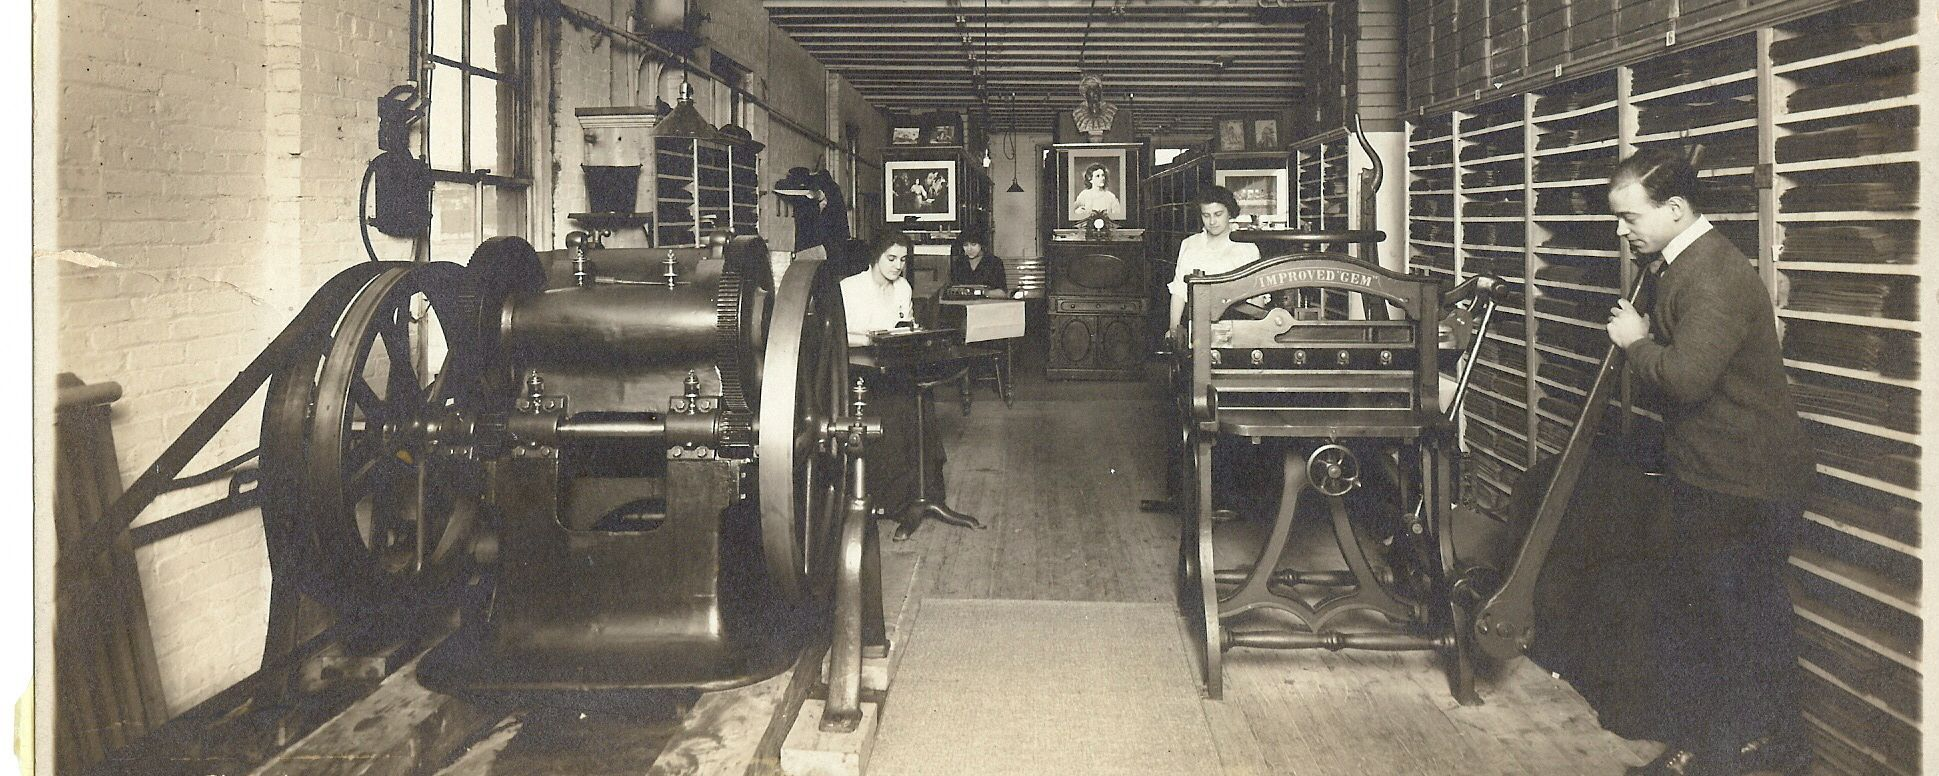 Print shop shown with big machines and people working with transcribers